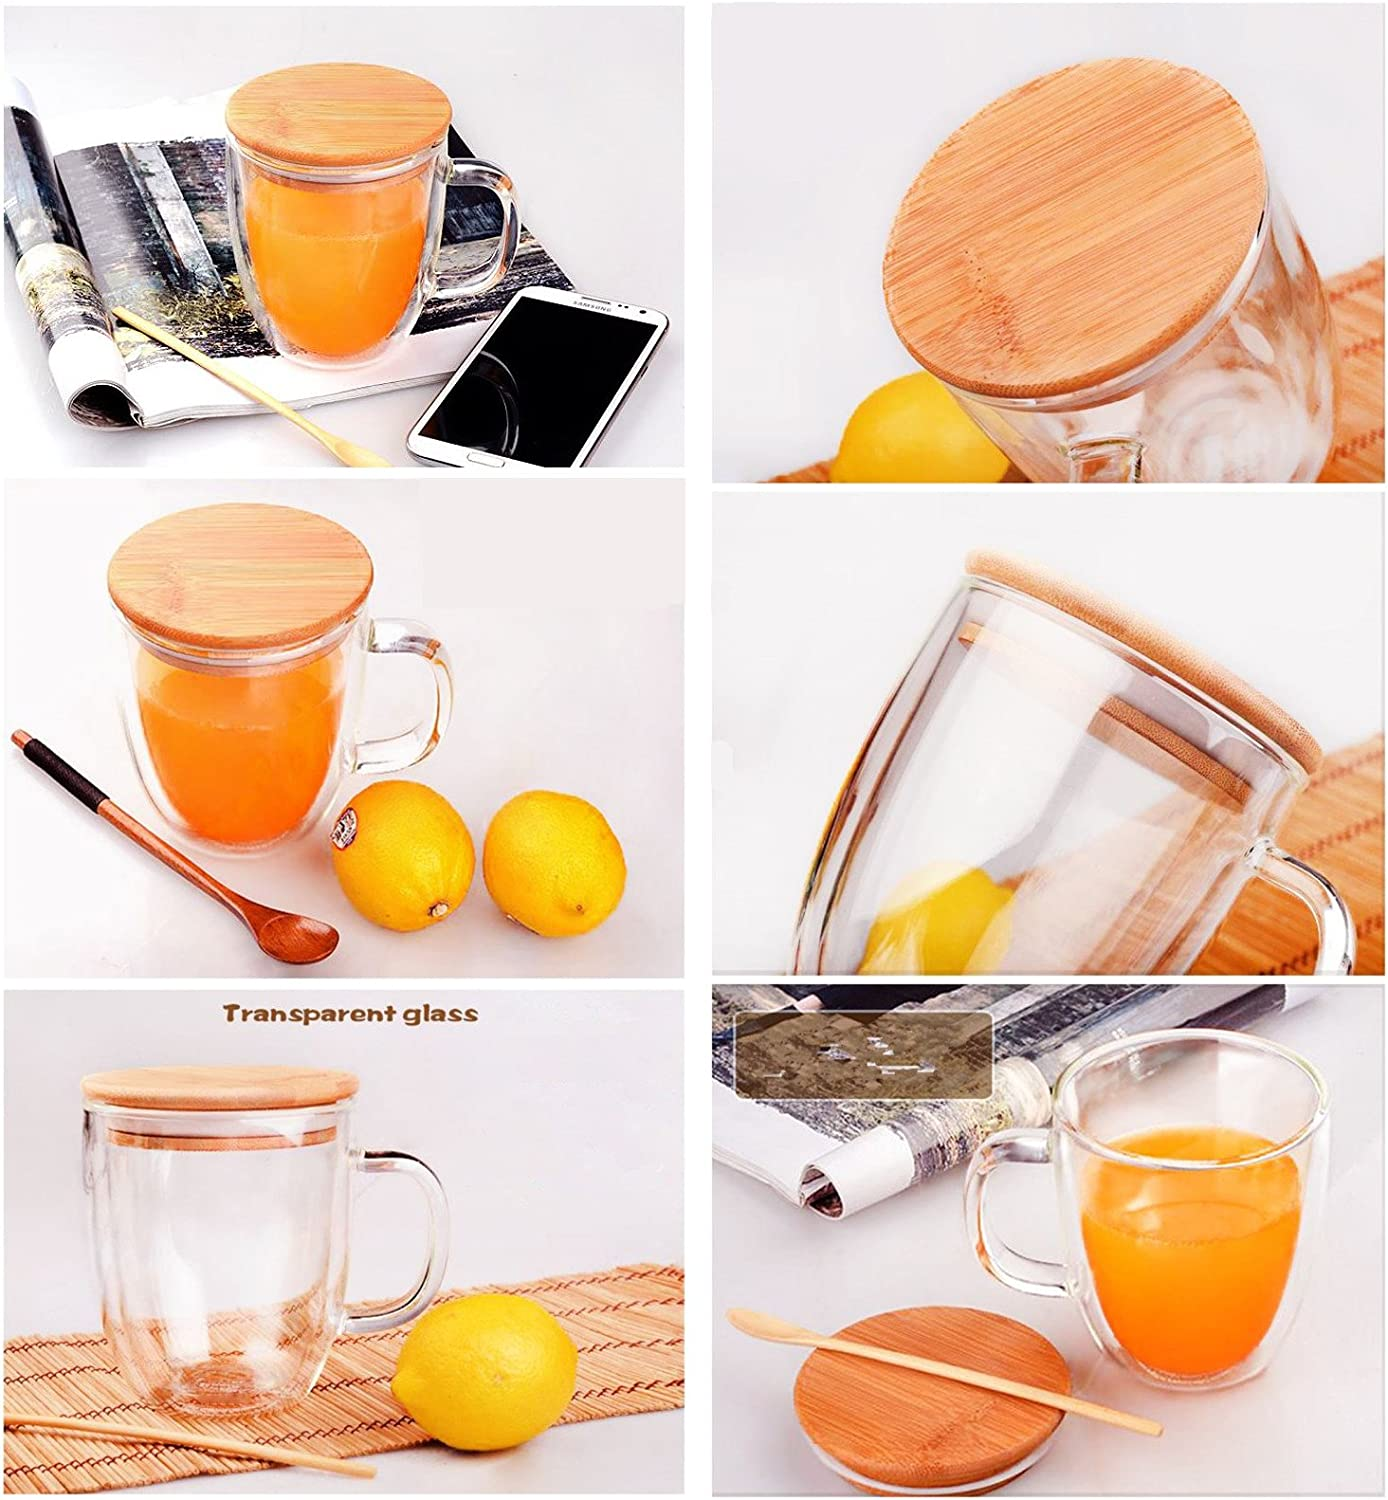 Xshelley 12oz Double wall glass family cups,Coffee Mug Cup Tea Cup with bamboo lid12oz